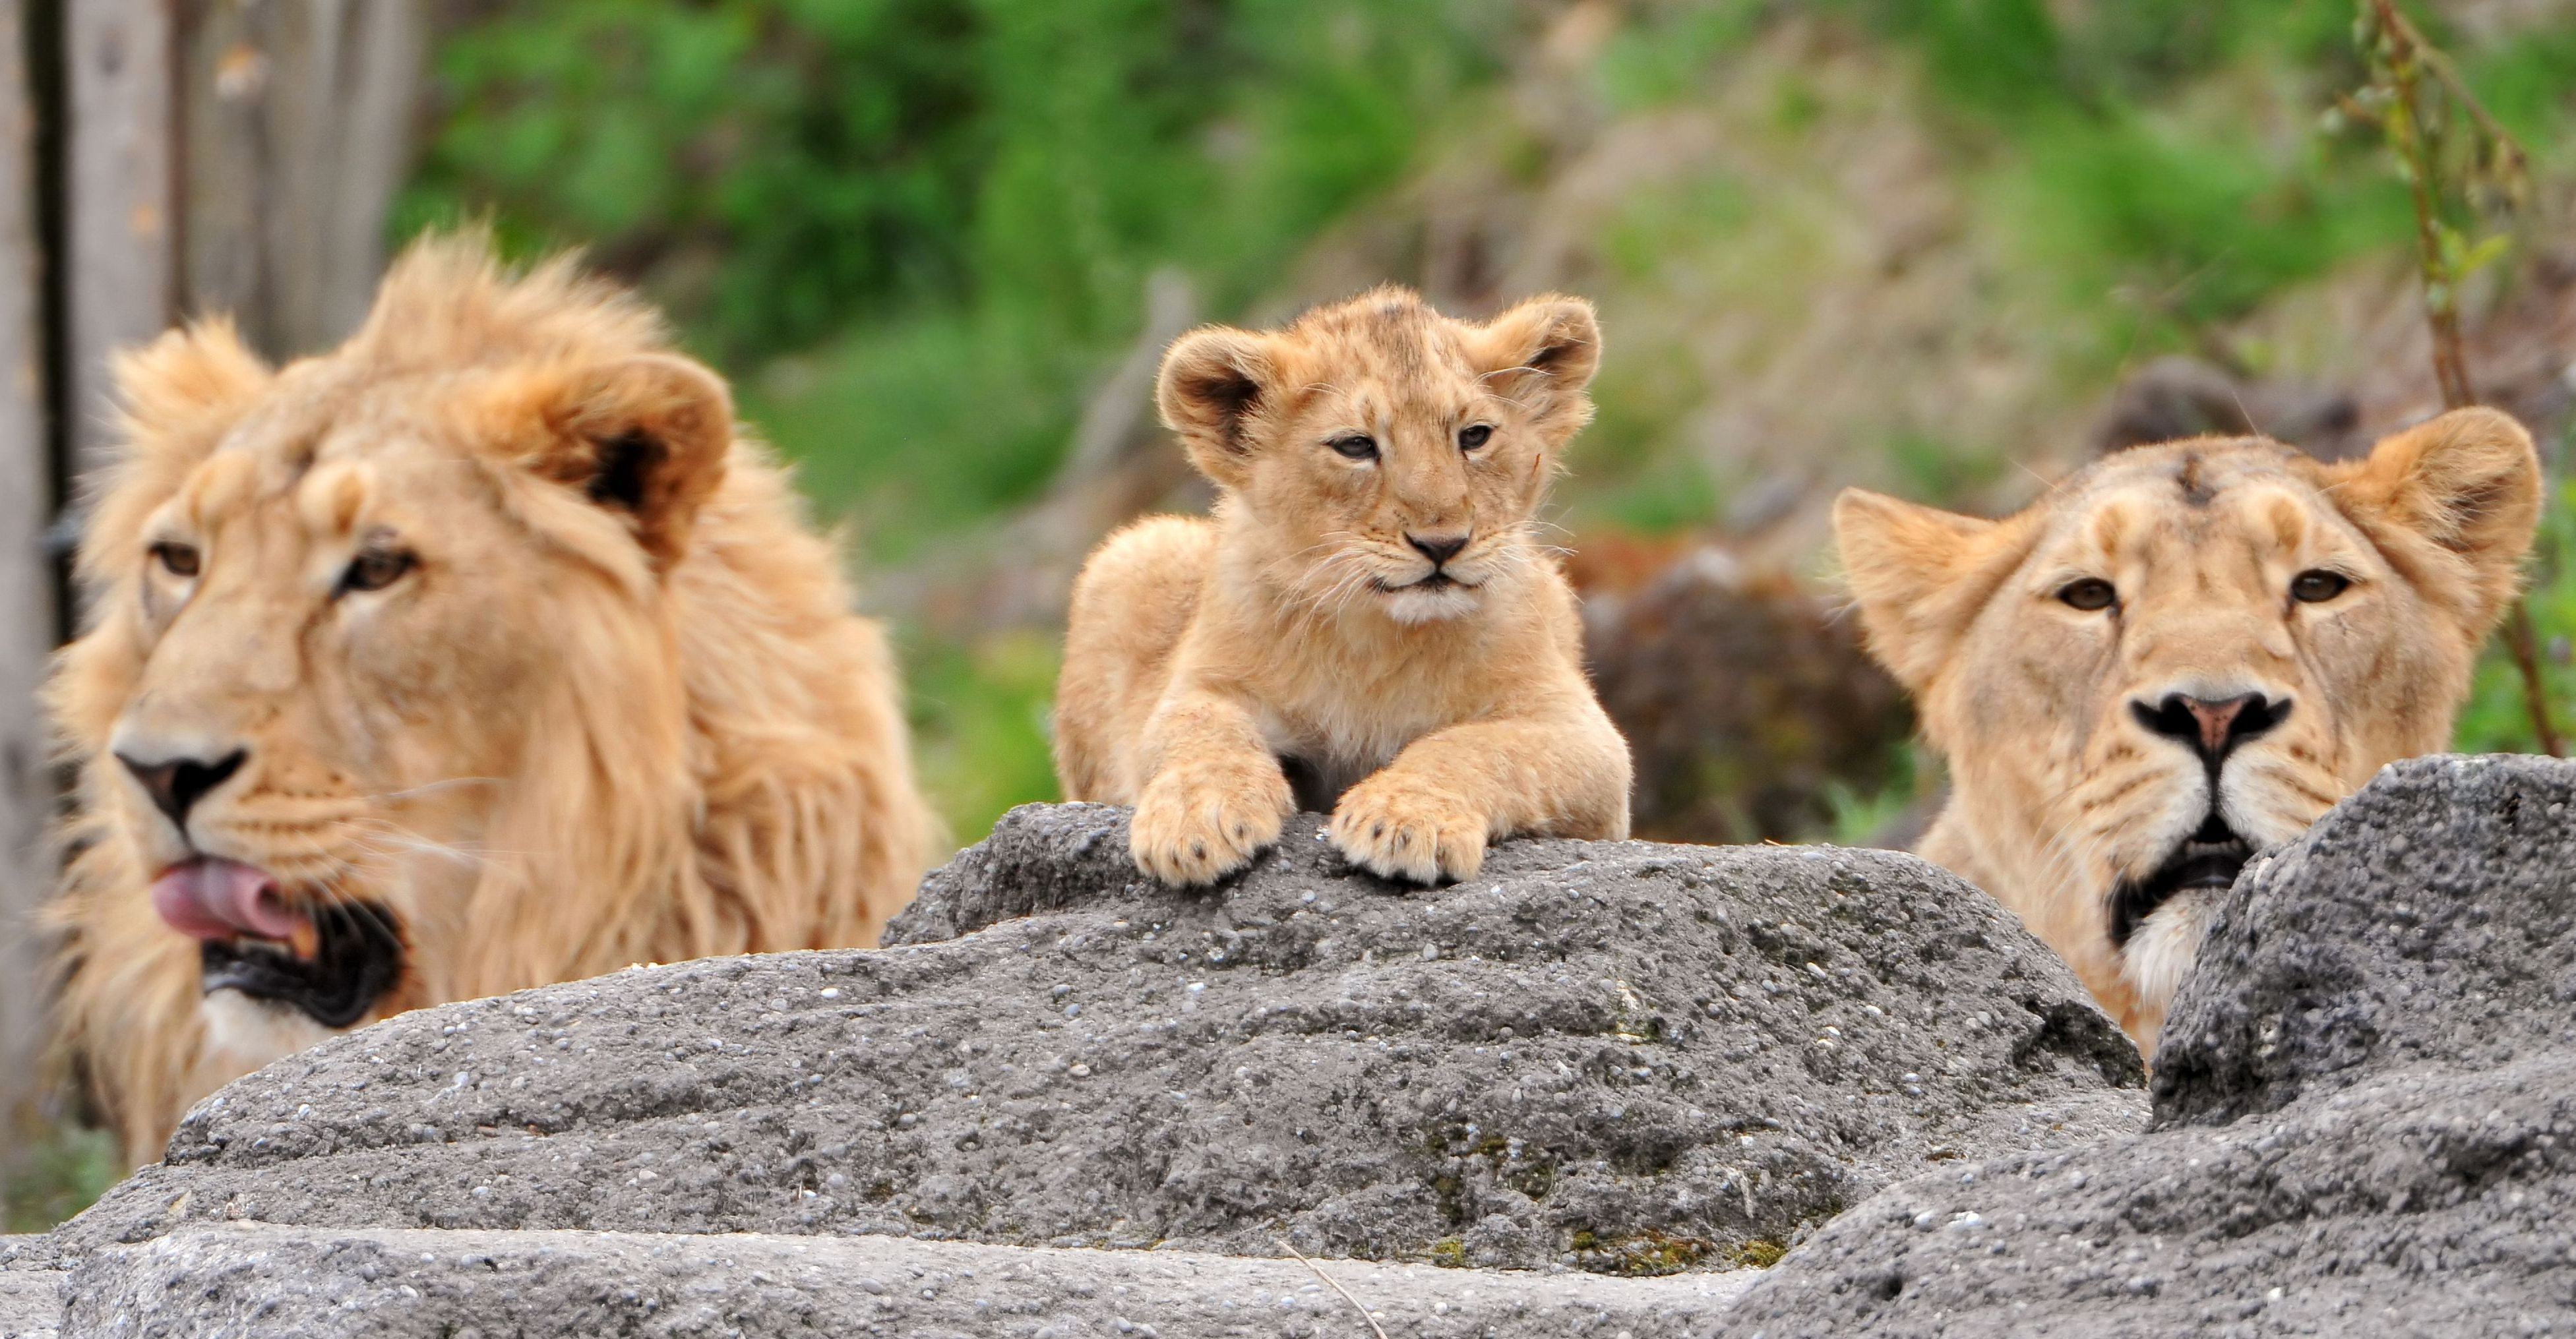 131764 download wallpaper Animals, Family, Young, Joey, Muzzle, Predators, Lions screensavers and pictures for free